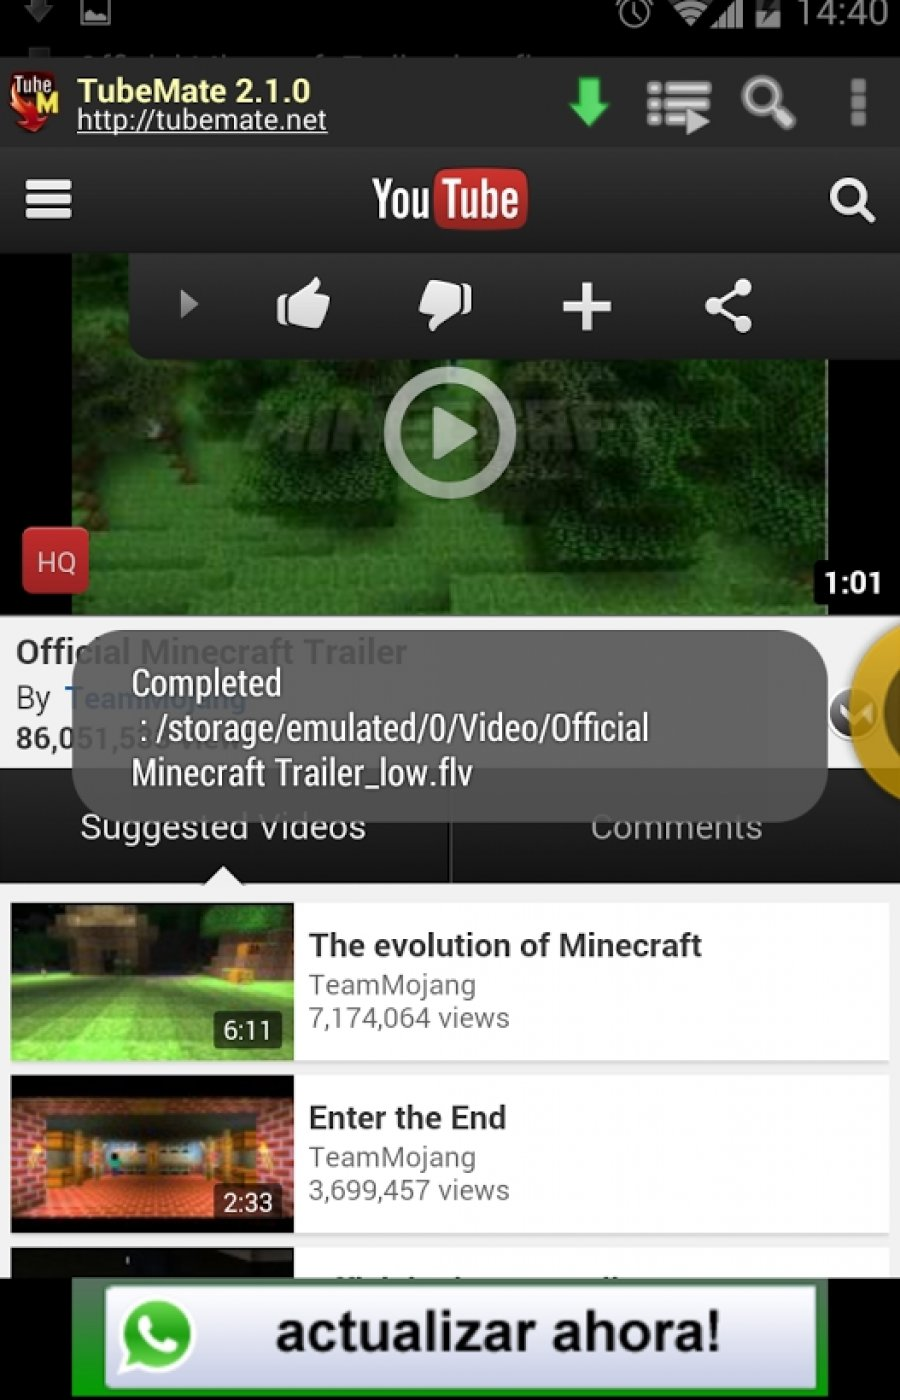 Youtube Downloader For Android Download: YouTube Downloader Tubemate Apk For Android Mobile Or